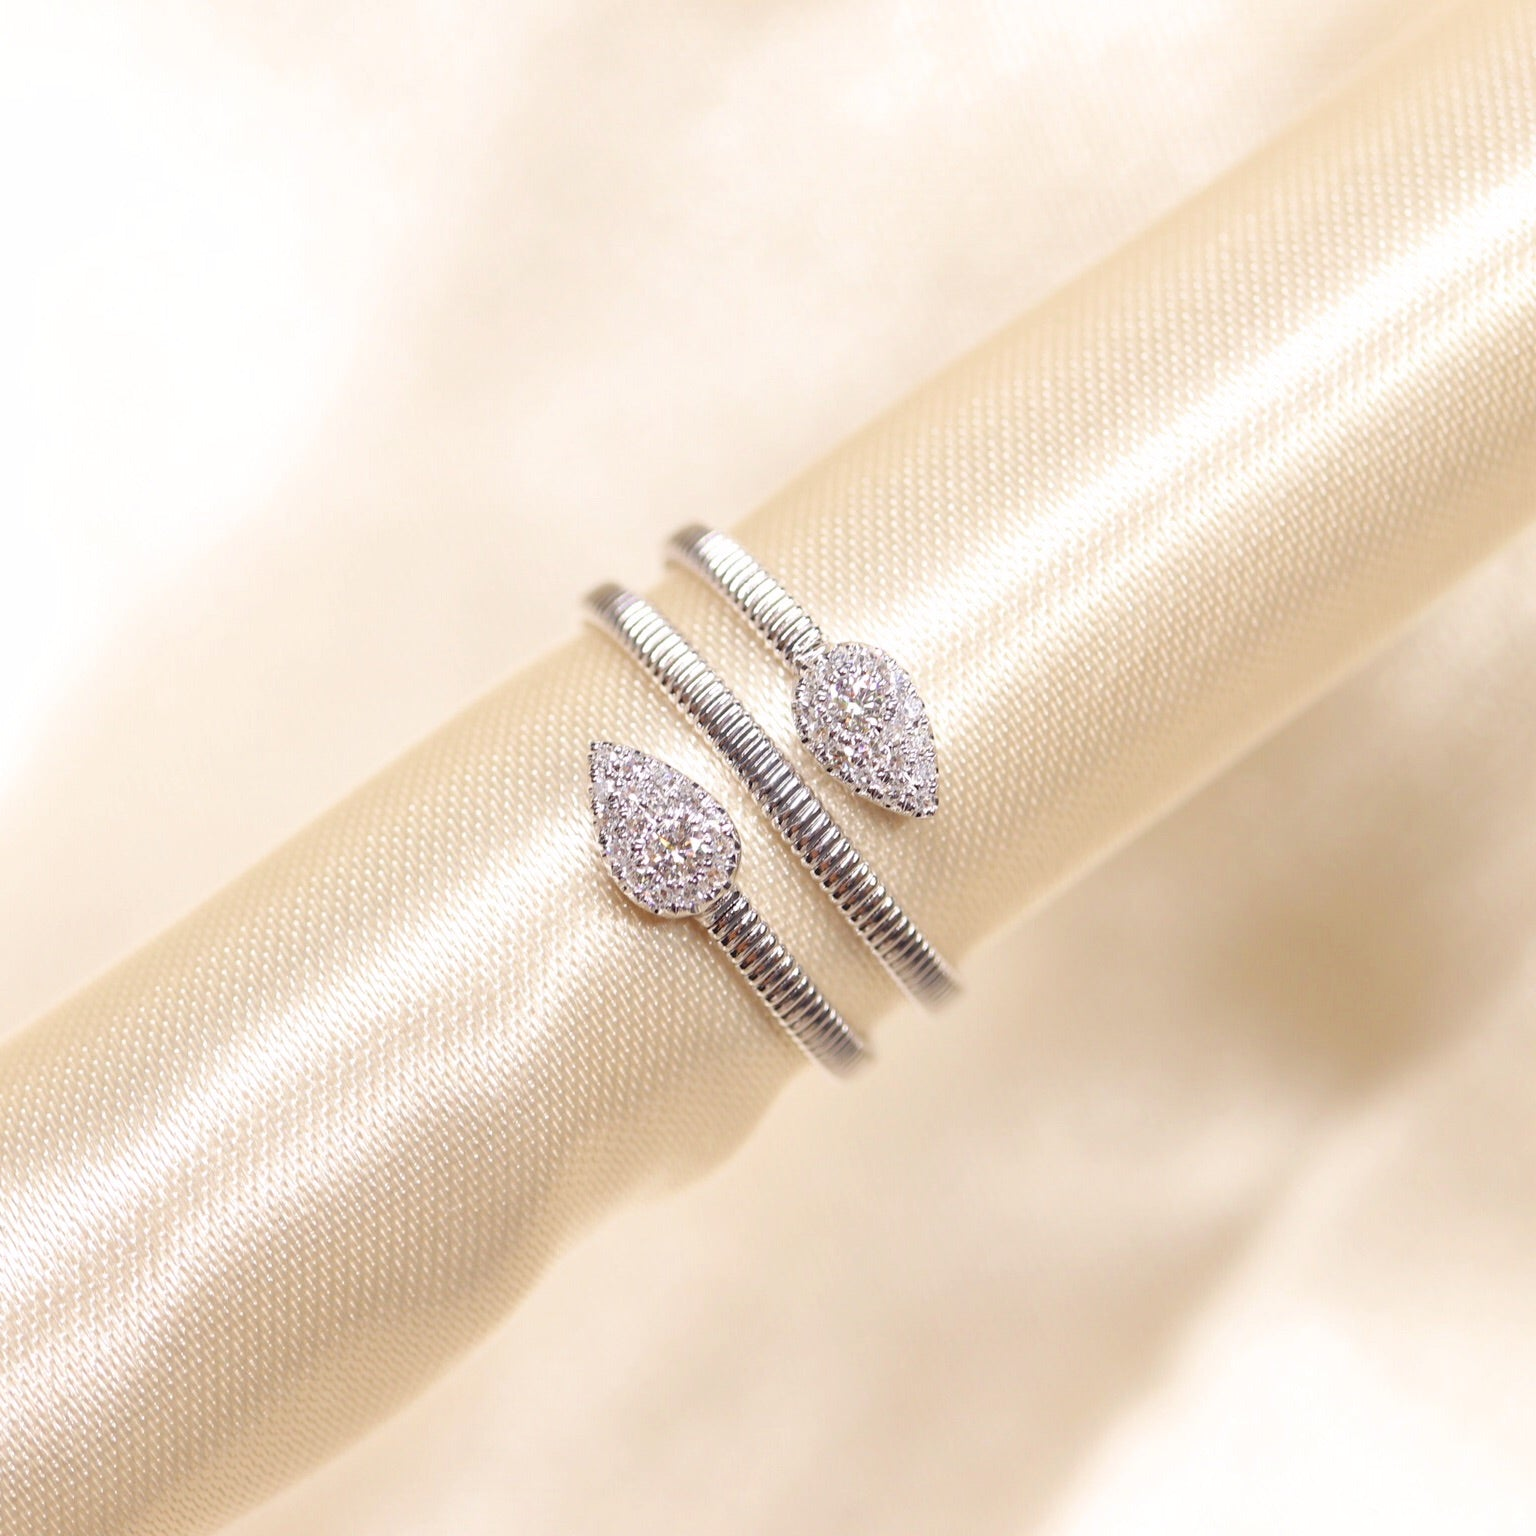 14K Gold Spiral Pave Diamond Ring - Ice Motif